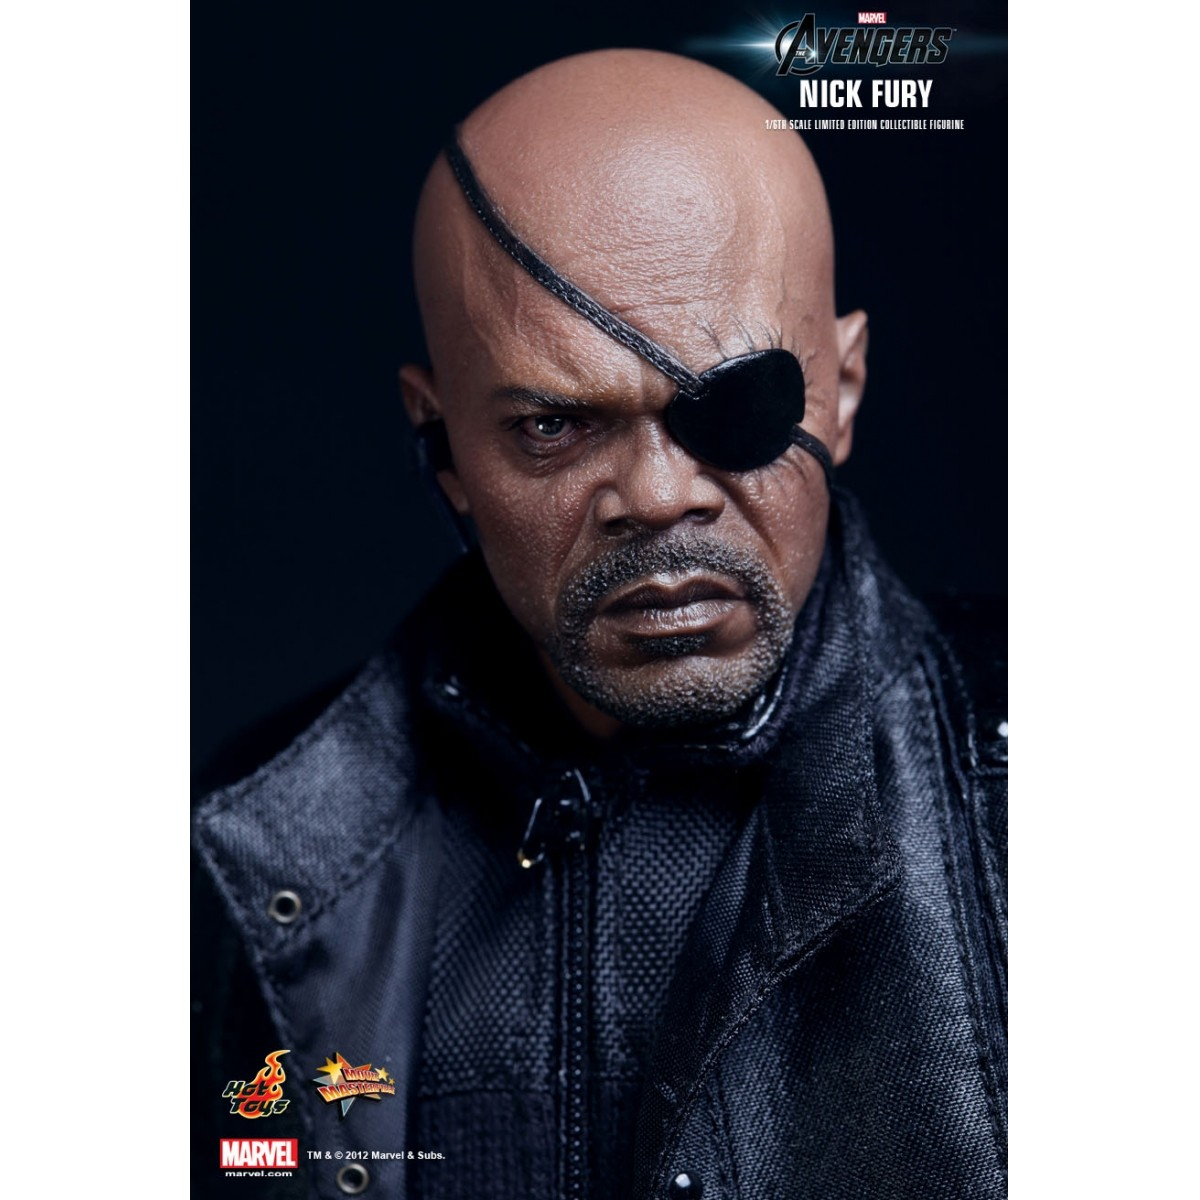 Boneco Nick Fury: Os Vingadores: The Avengers Escala 1/6 - Hot Toys - CG